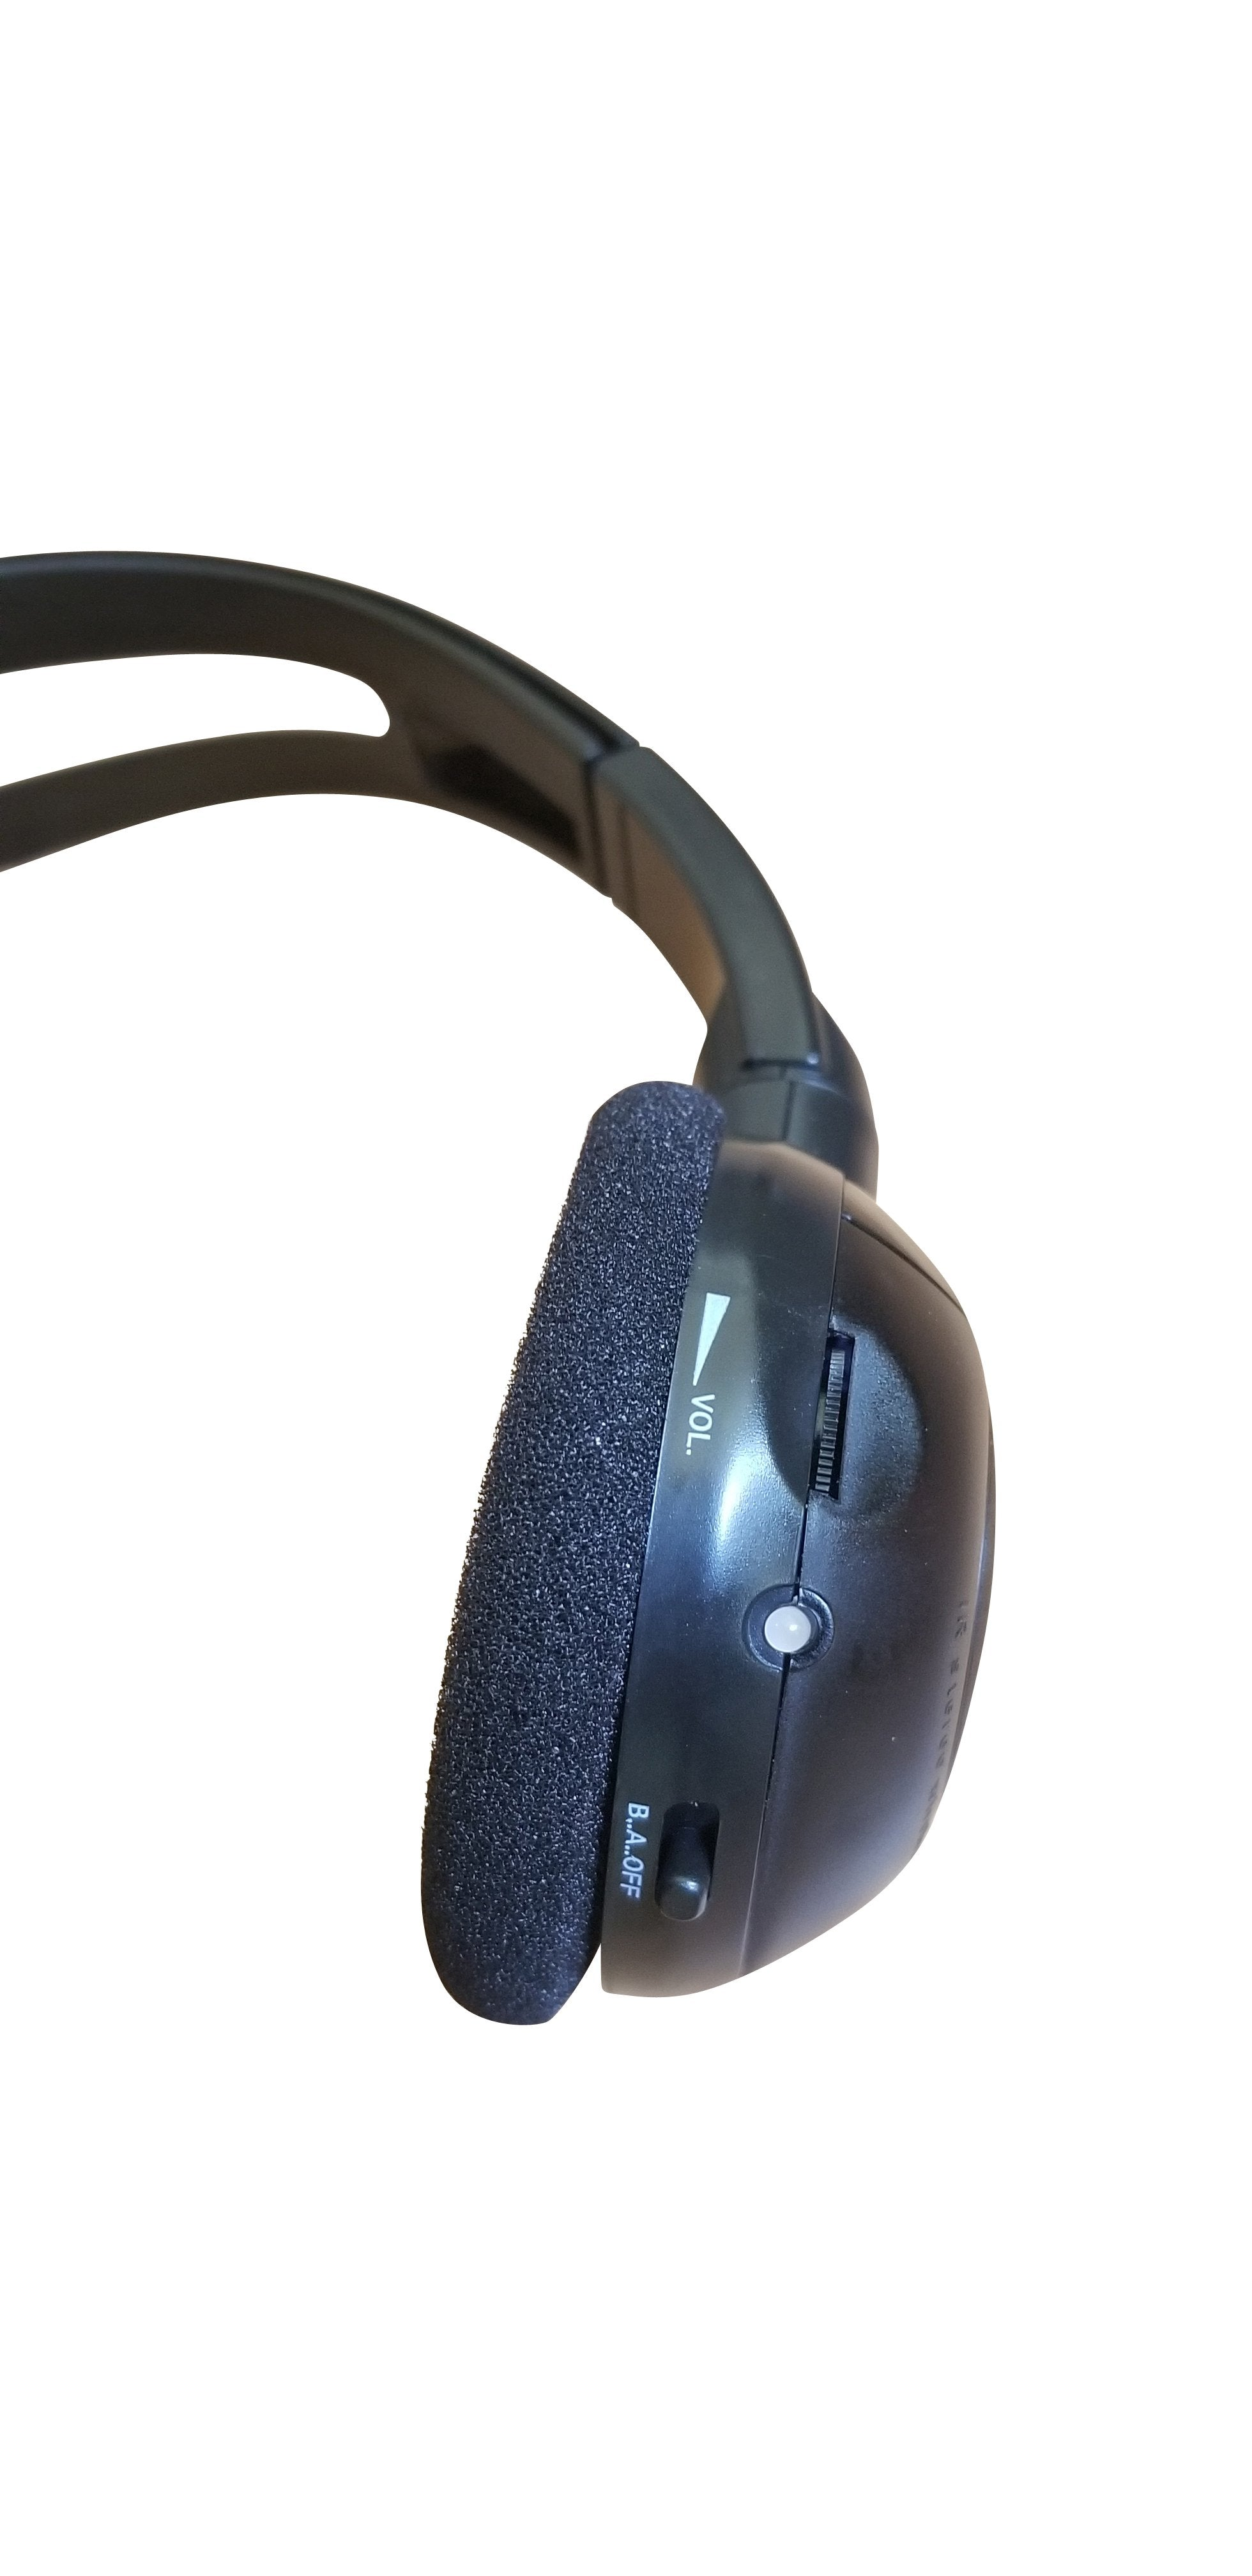 2007 Honda Odyssey Wireless DVD Headphone